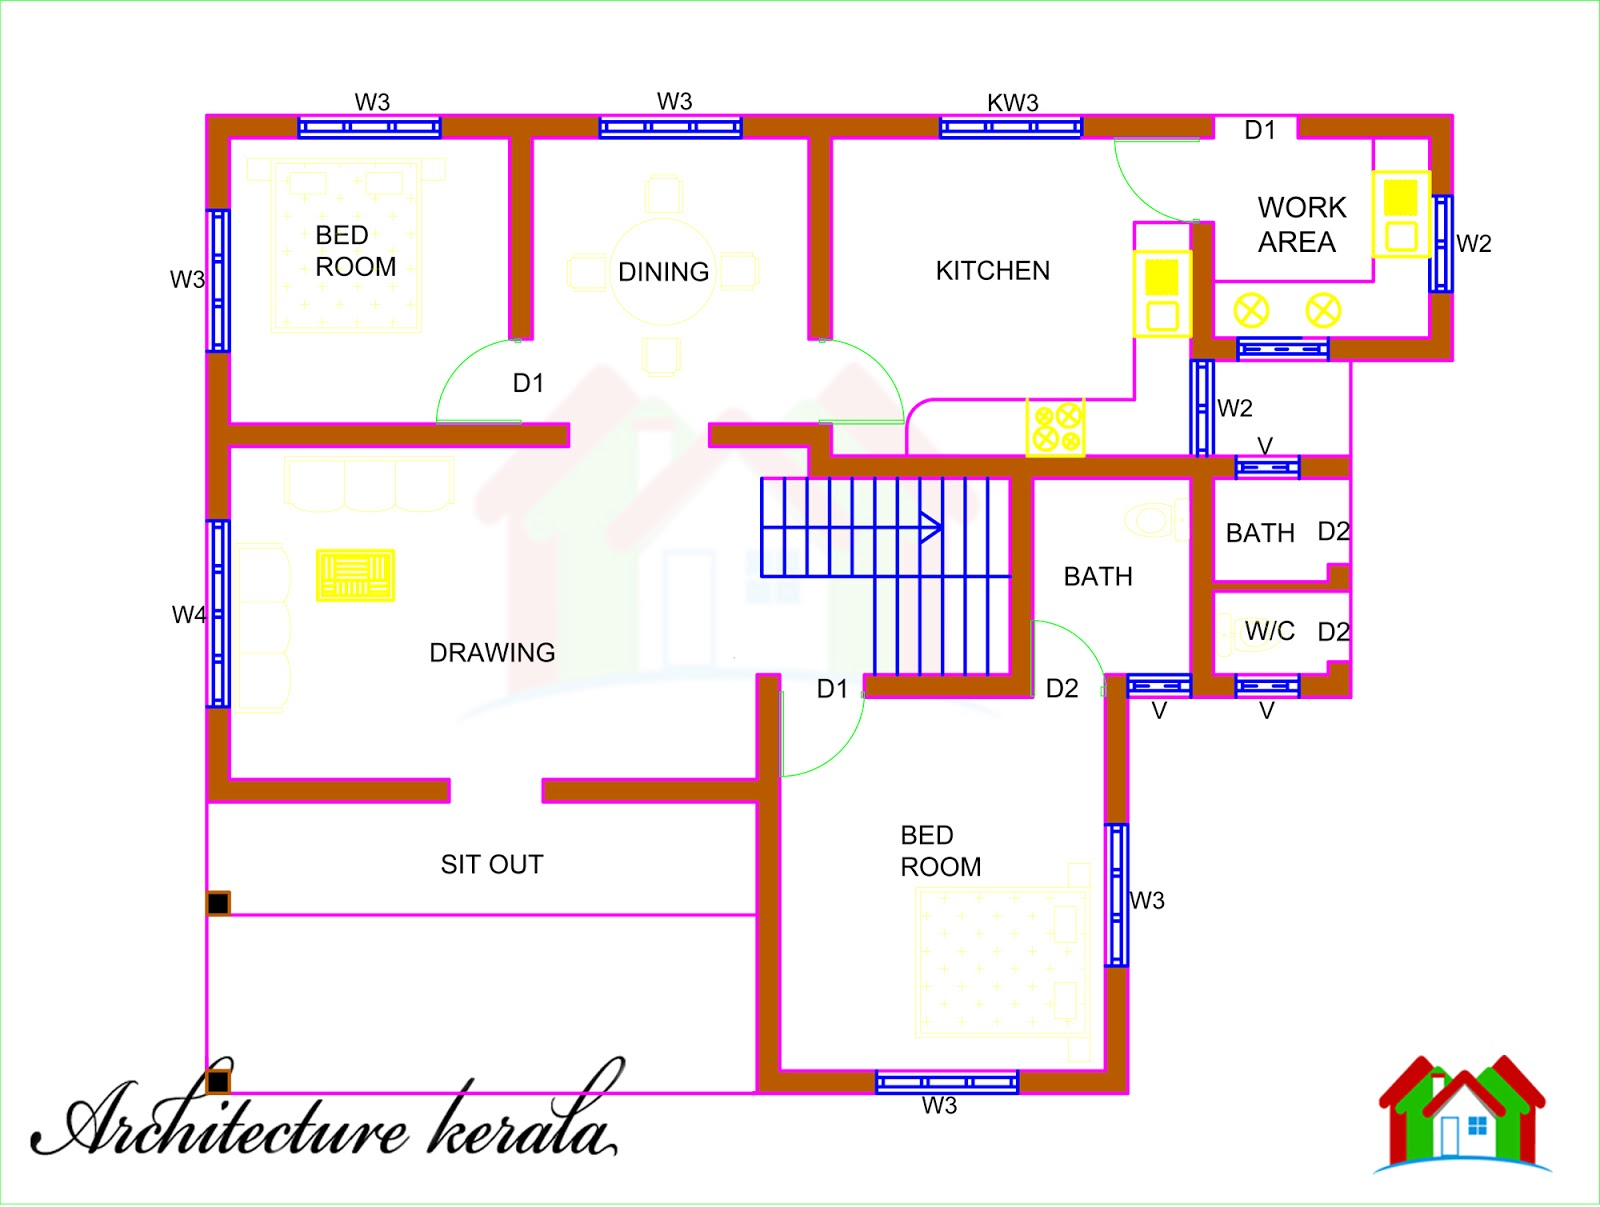 Architecture kerala 5 bedroom house plan and its for Kerala two bedroom house plans